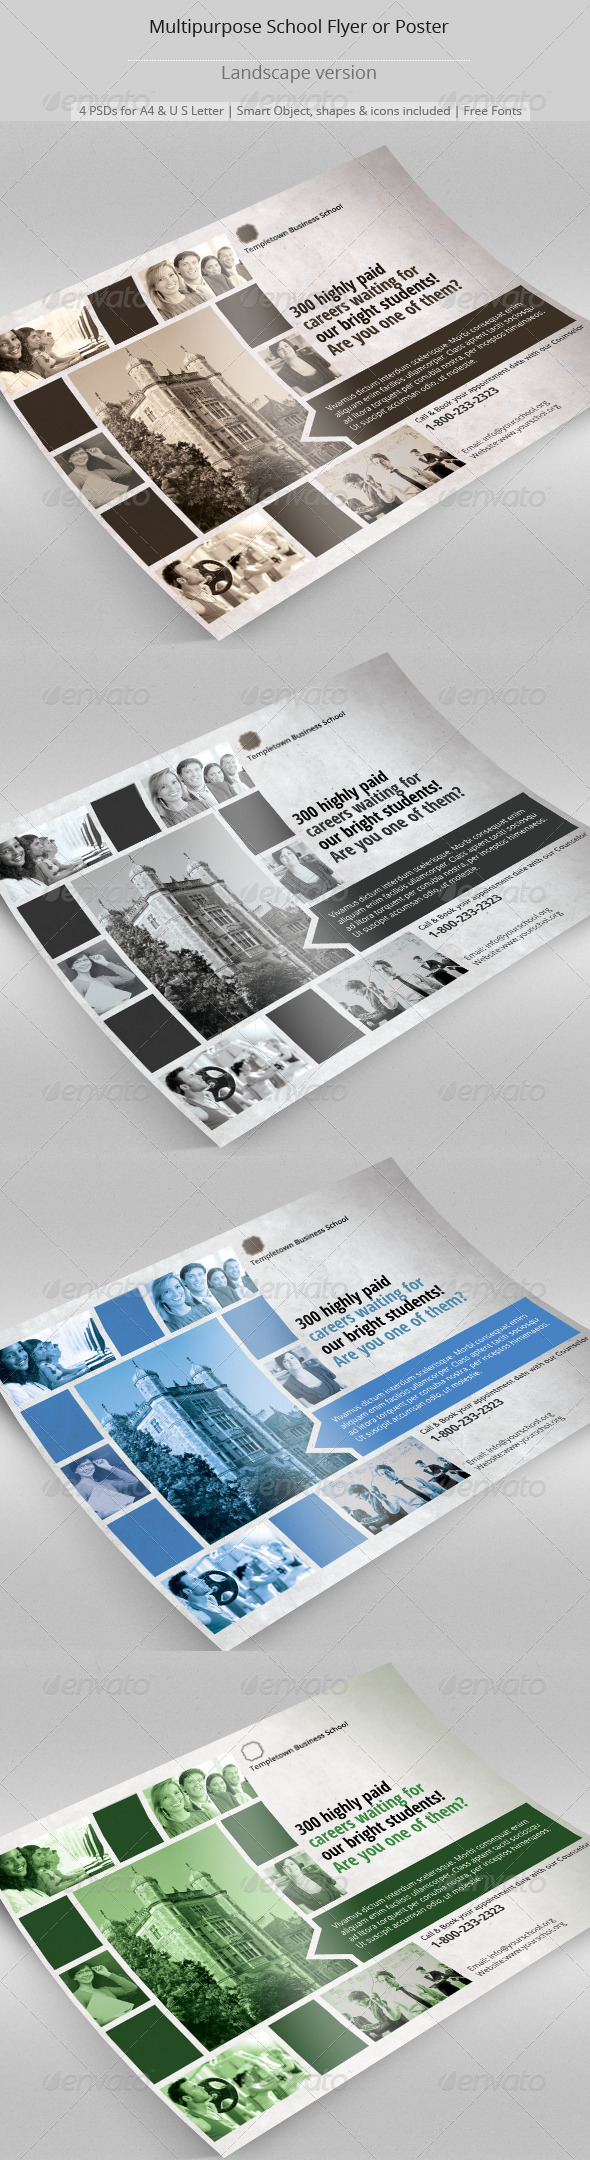 GraphicRiver Multipurpose School Flyer or Poster 8204401